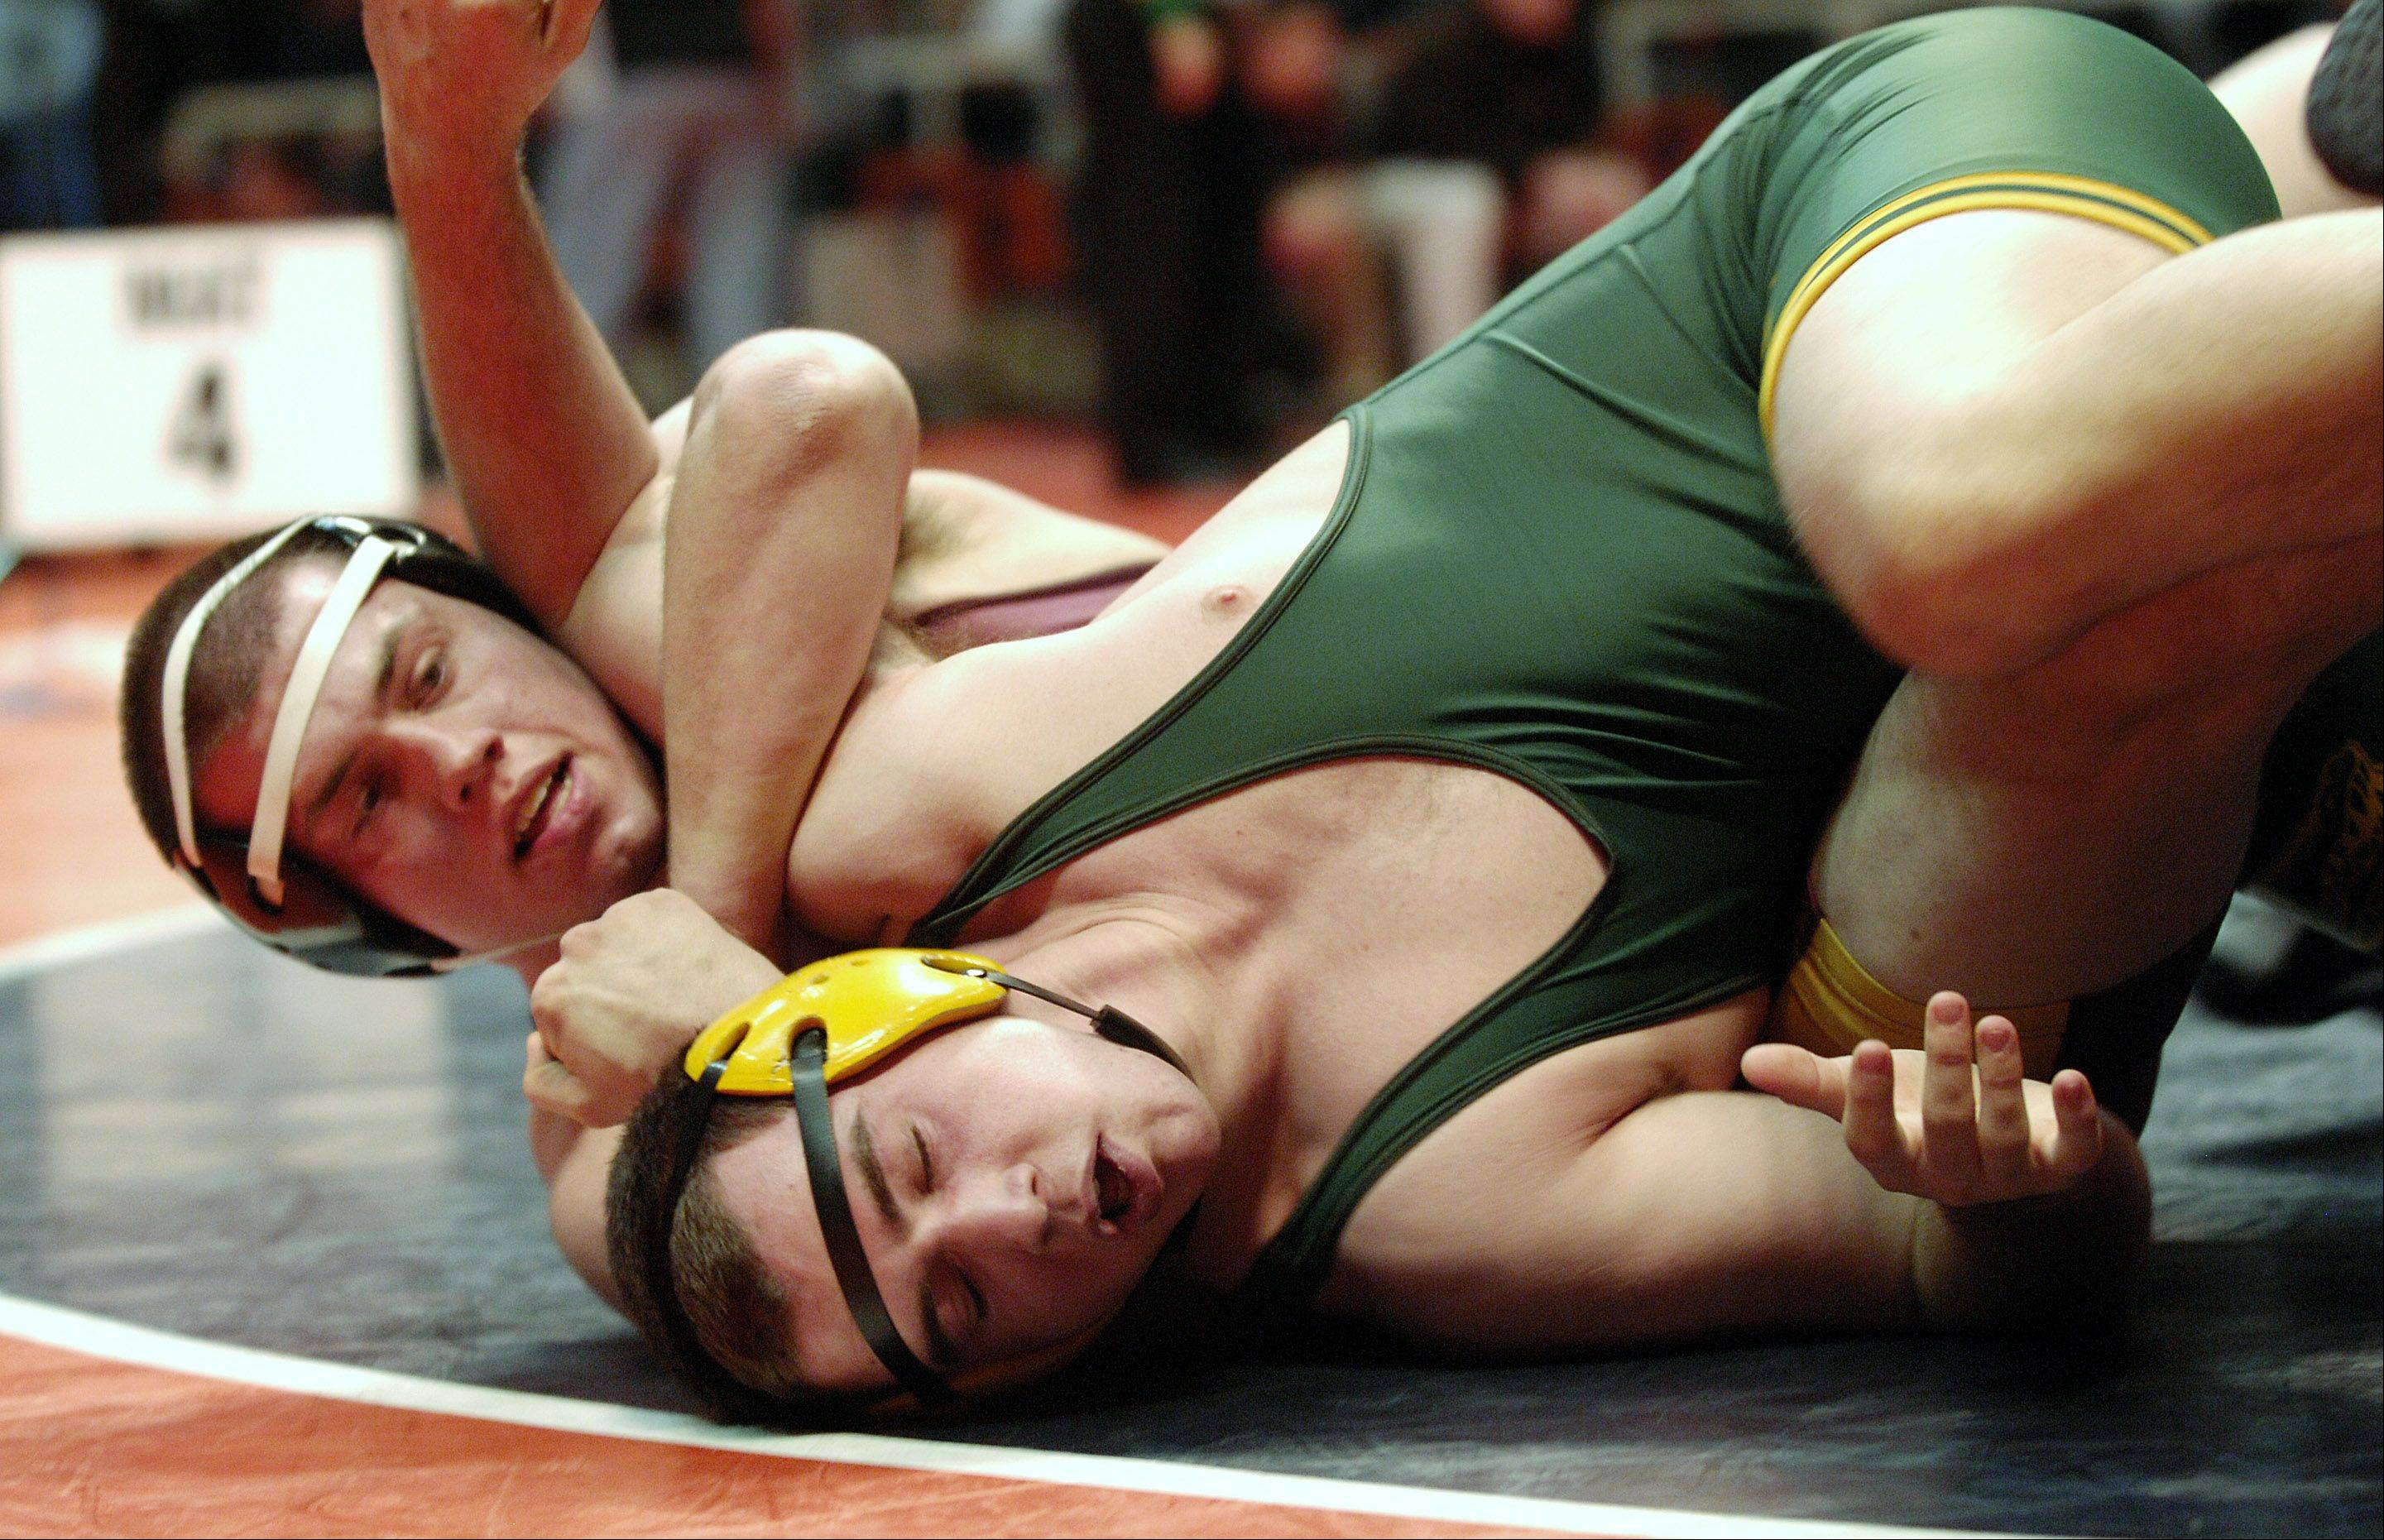 Josh Marchok of Schaumburg, left, wrestles and defeats Mike Romanelli of Crystal Lake South during a 3A 220 quarterfinal bout at the 2012 IHSA wrestling state finals in Champaign.